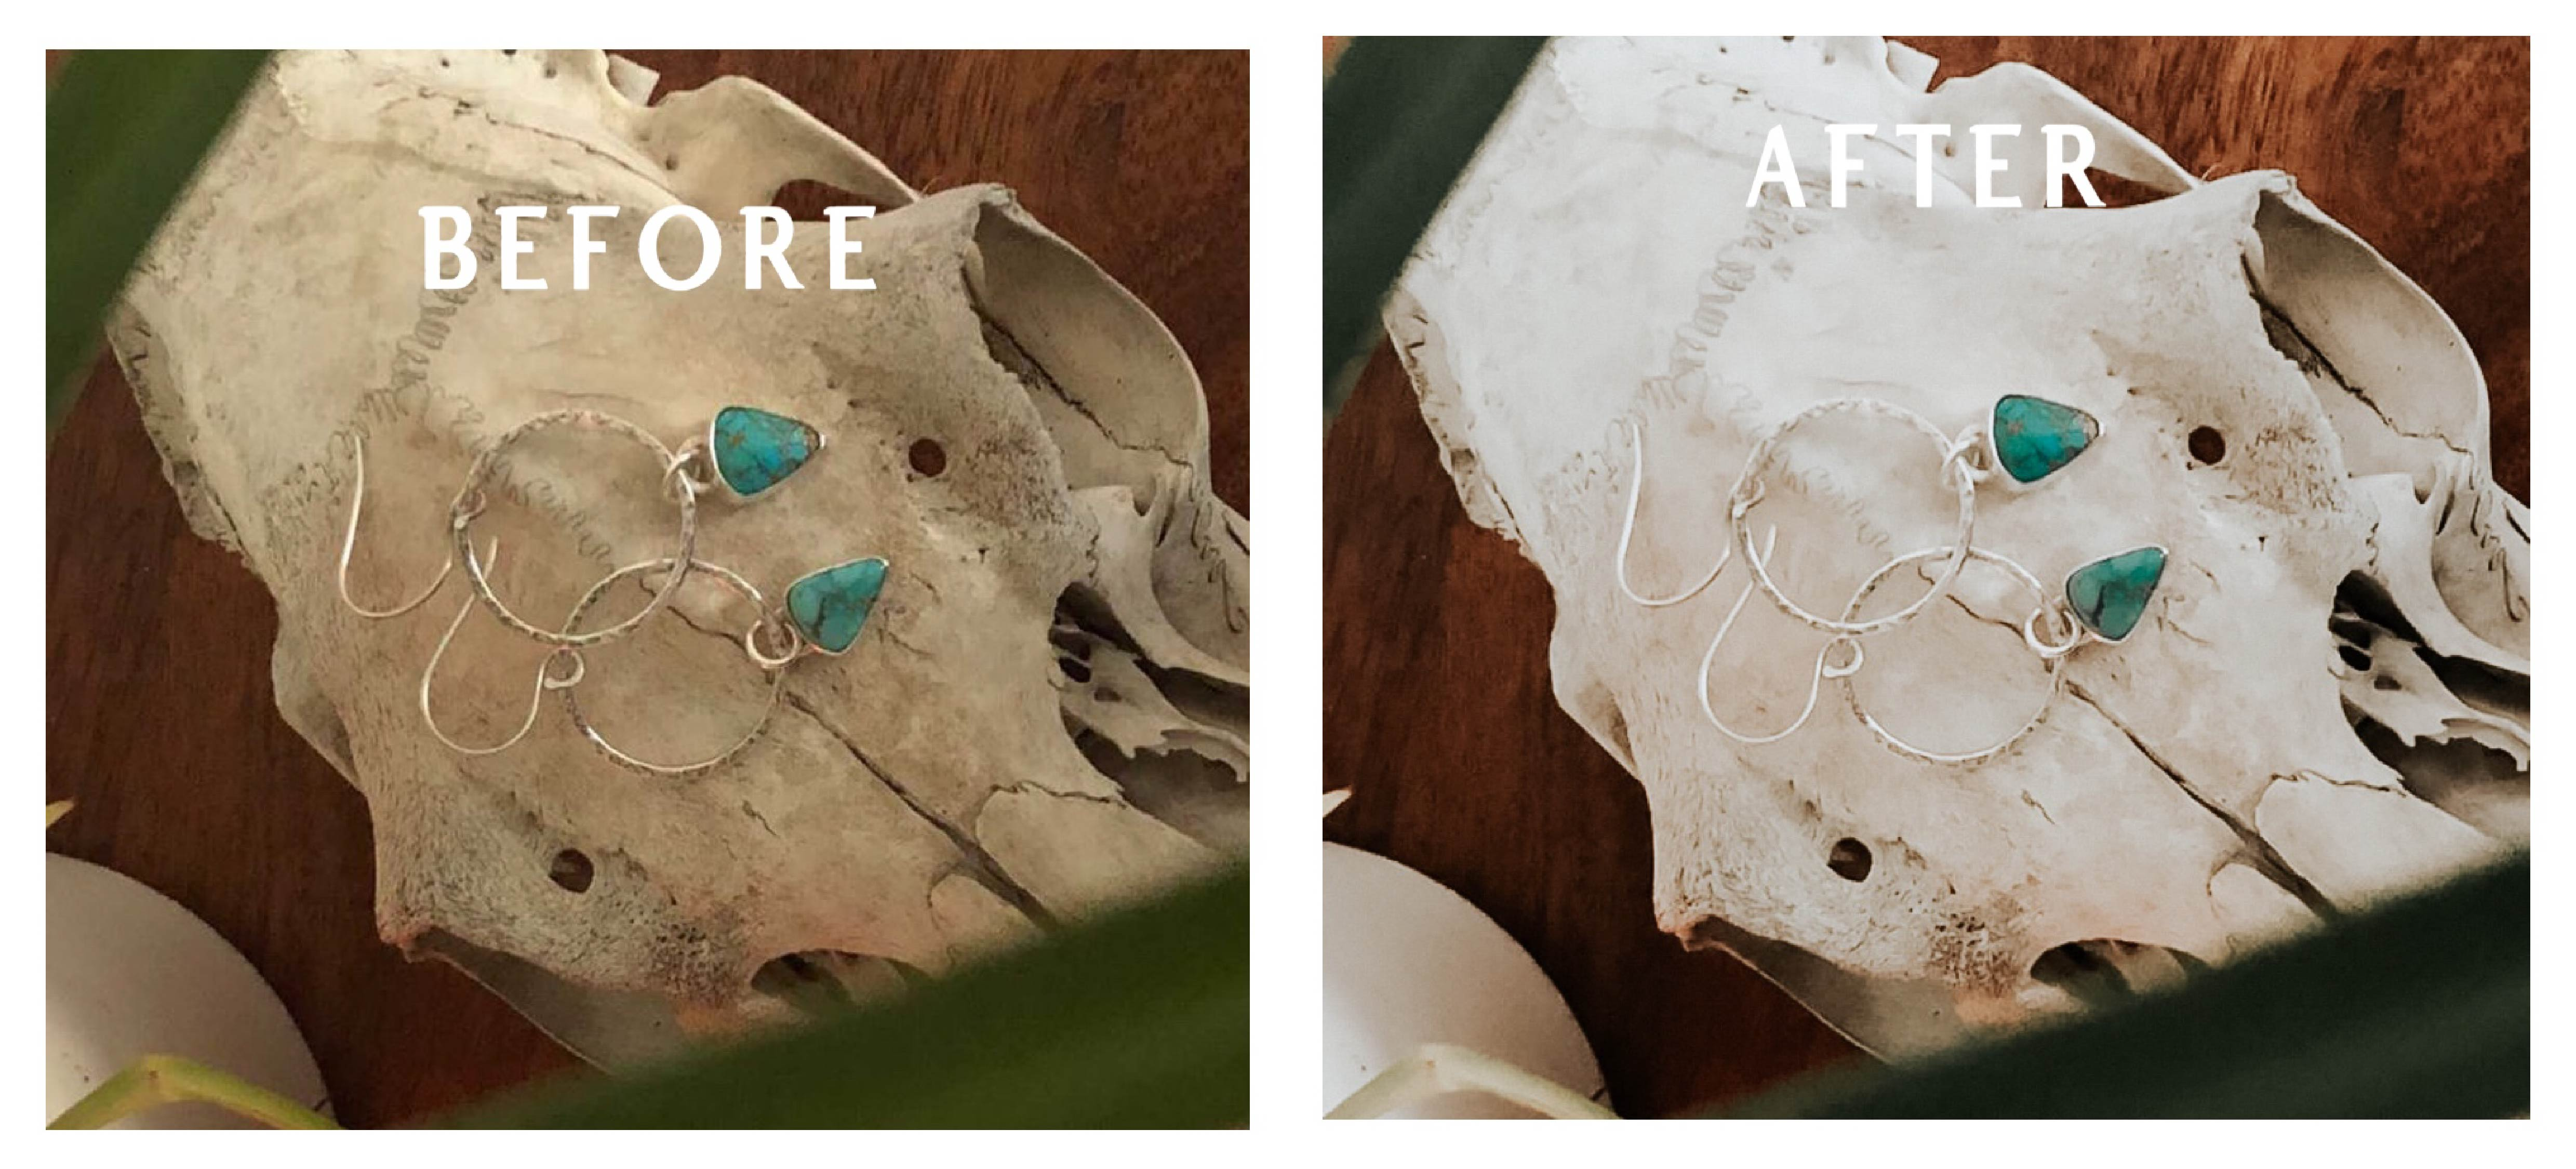 Product photo editing before and after example